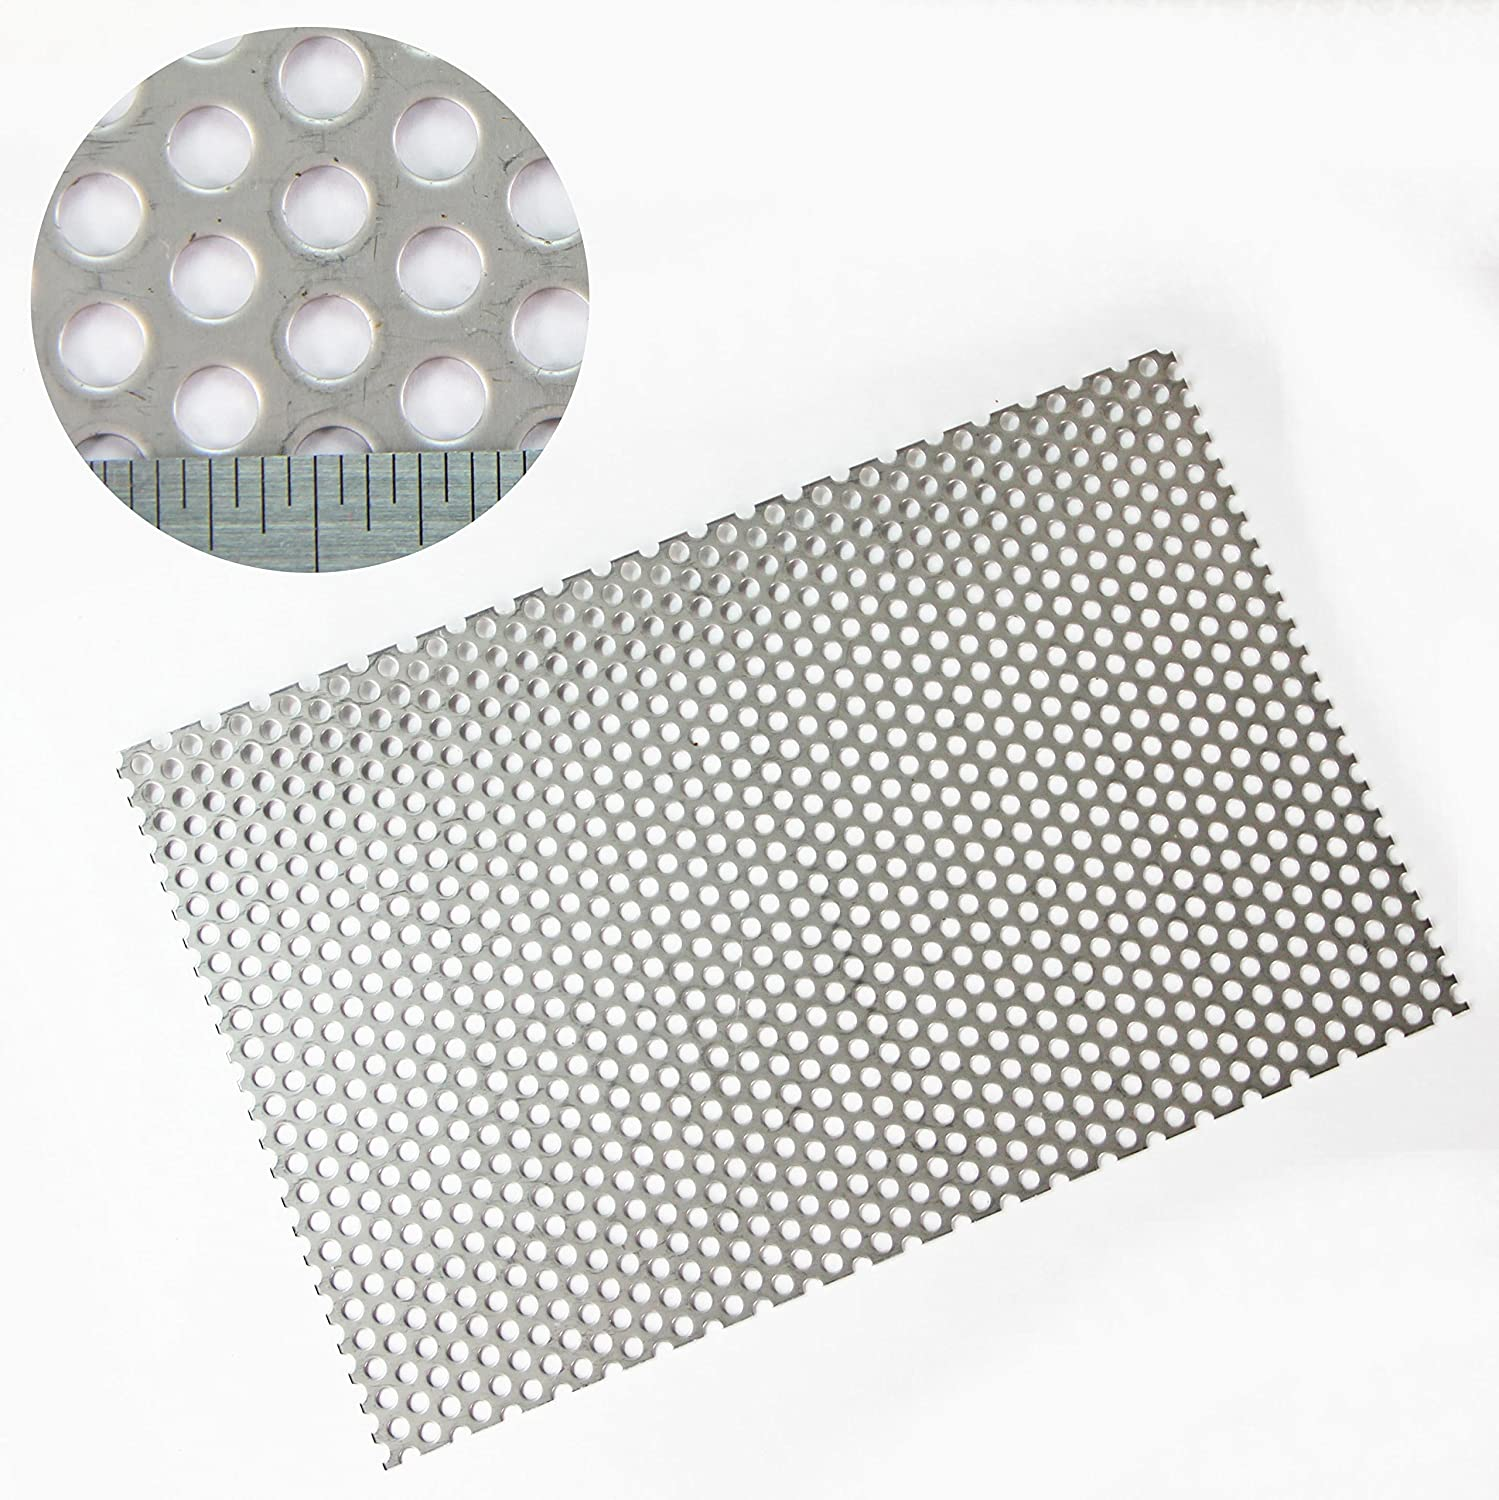 5mm Hole x 8mm Pitch x 1mm Thickness Round SS304 Perforated Mesh Sheet - A4 Sheet - 210 x 300mm Sheet The Mesh Company